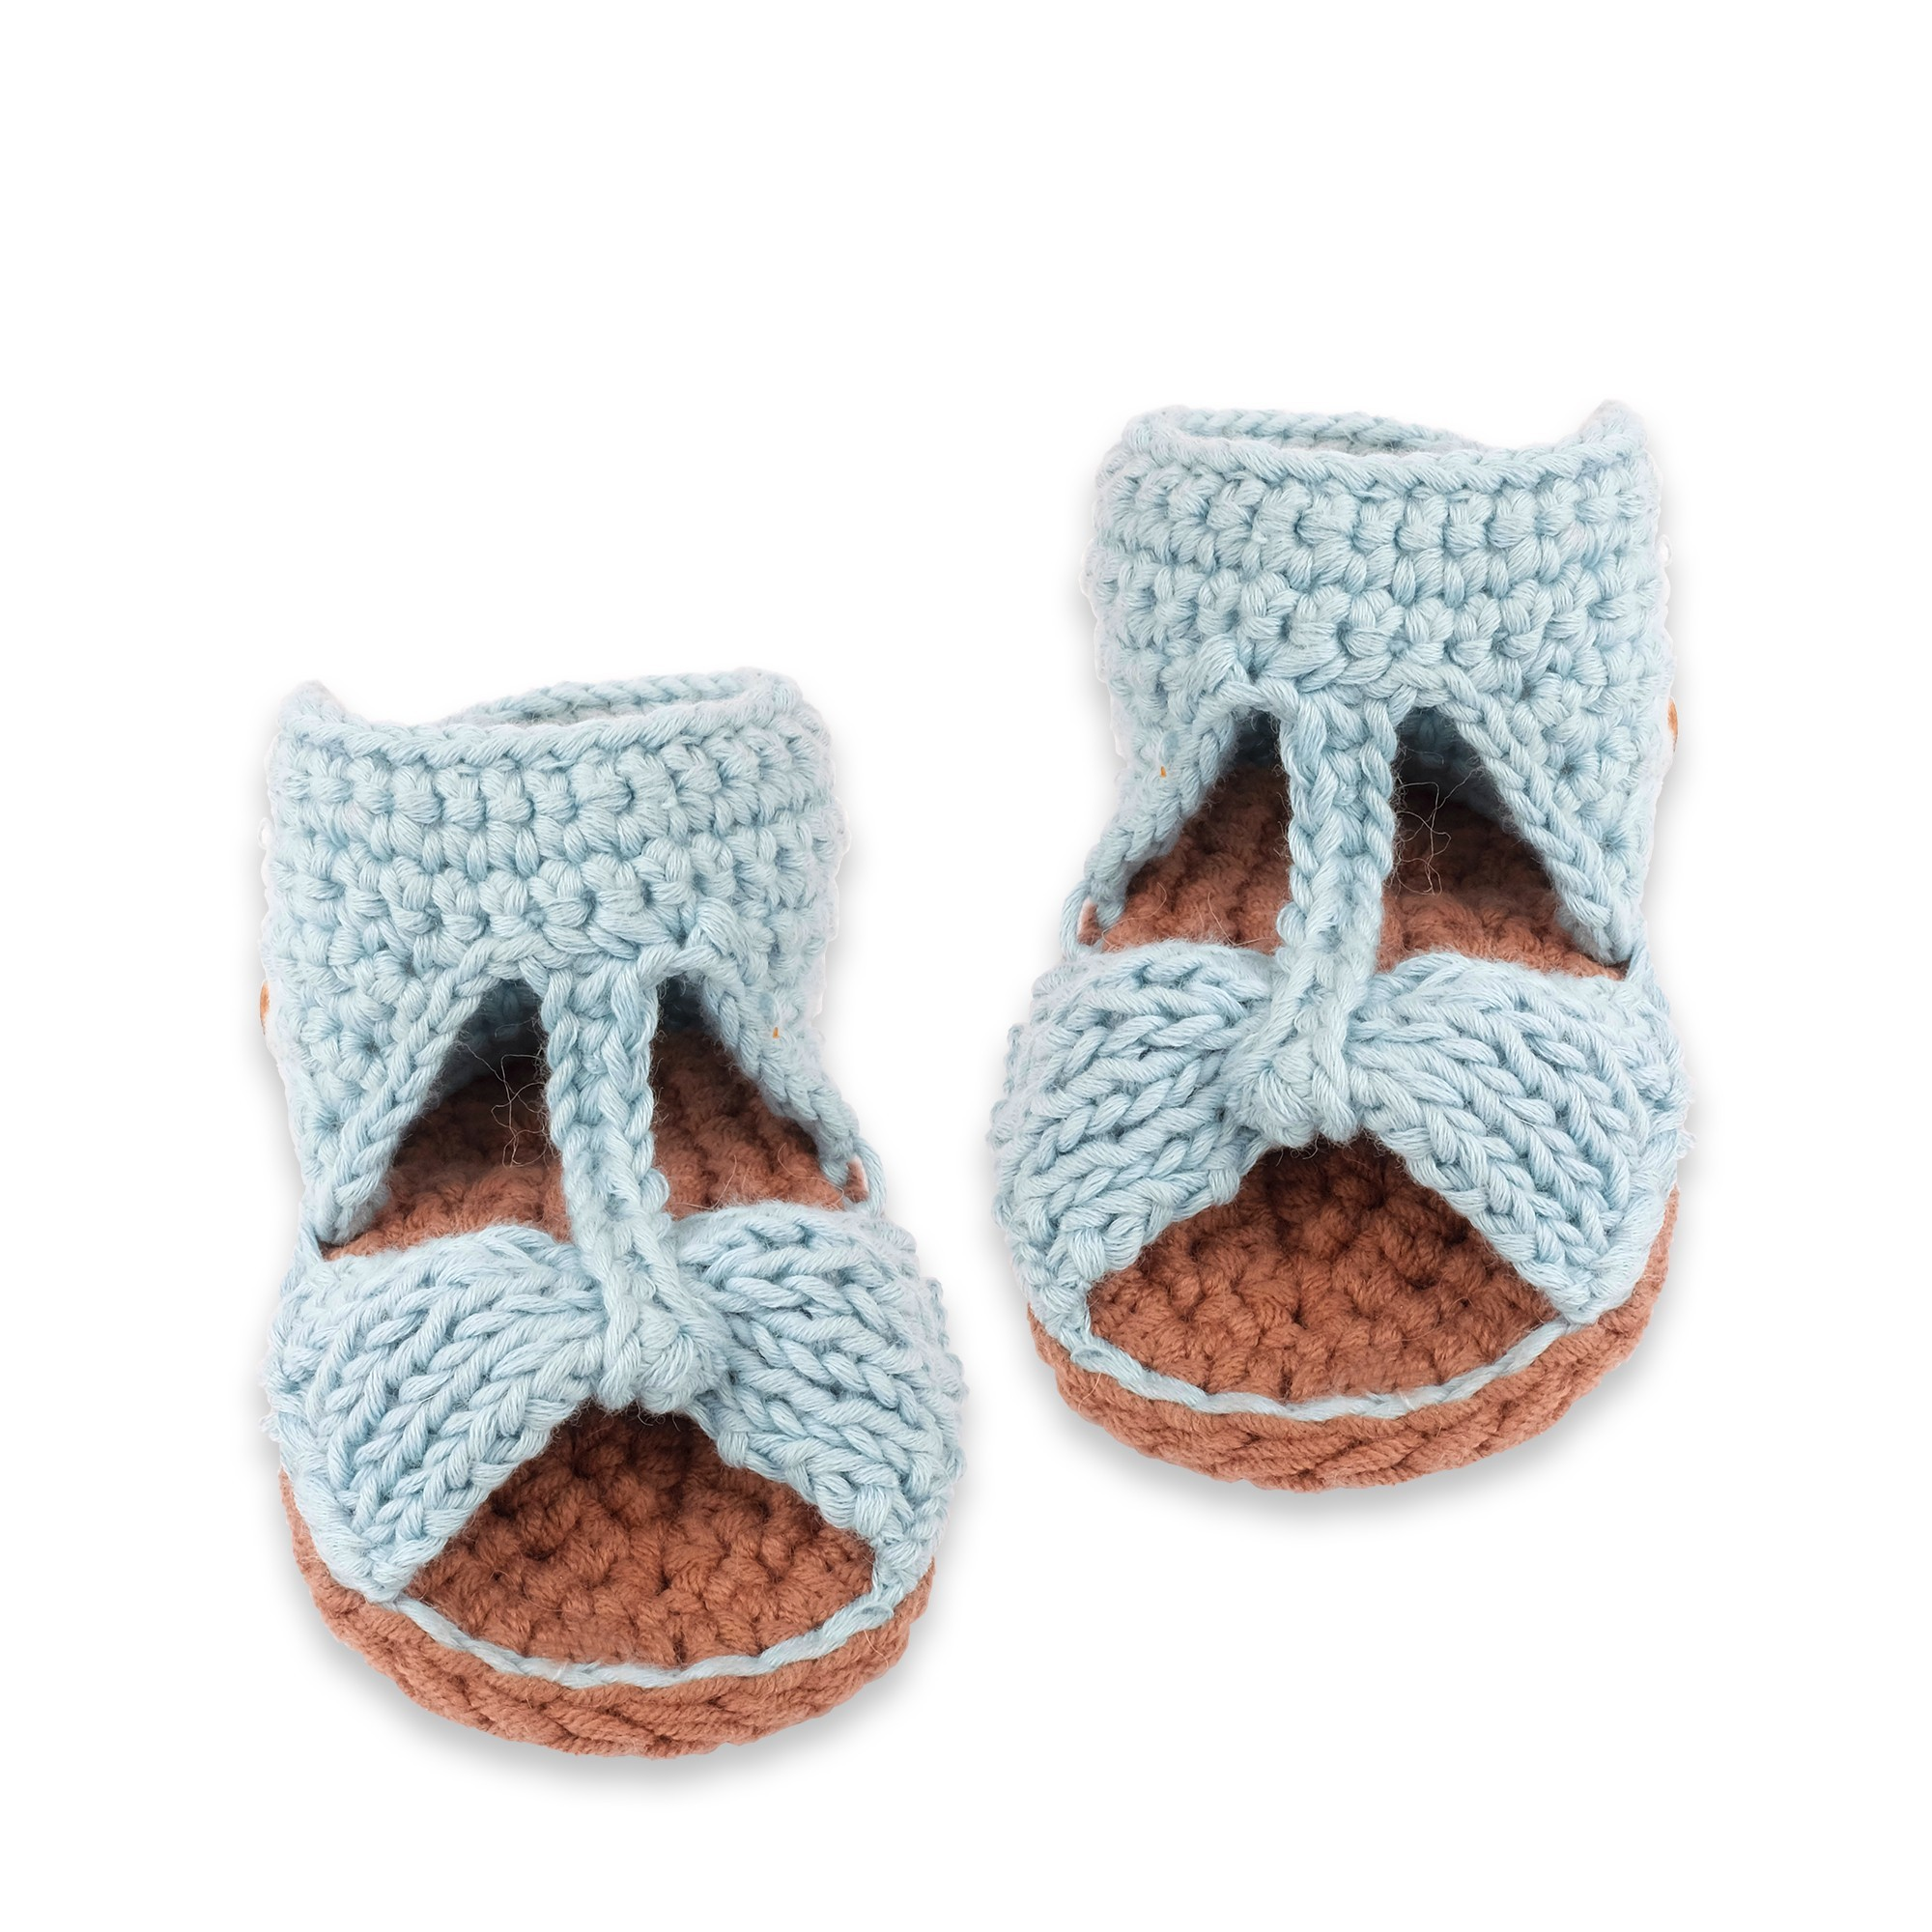 e6eeb8c678d7bd Slippers Mamy Factory - Sky blue knitted sandals for baby